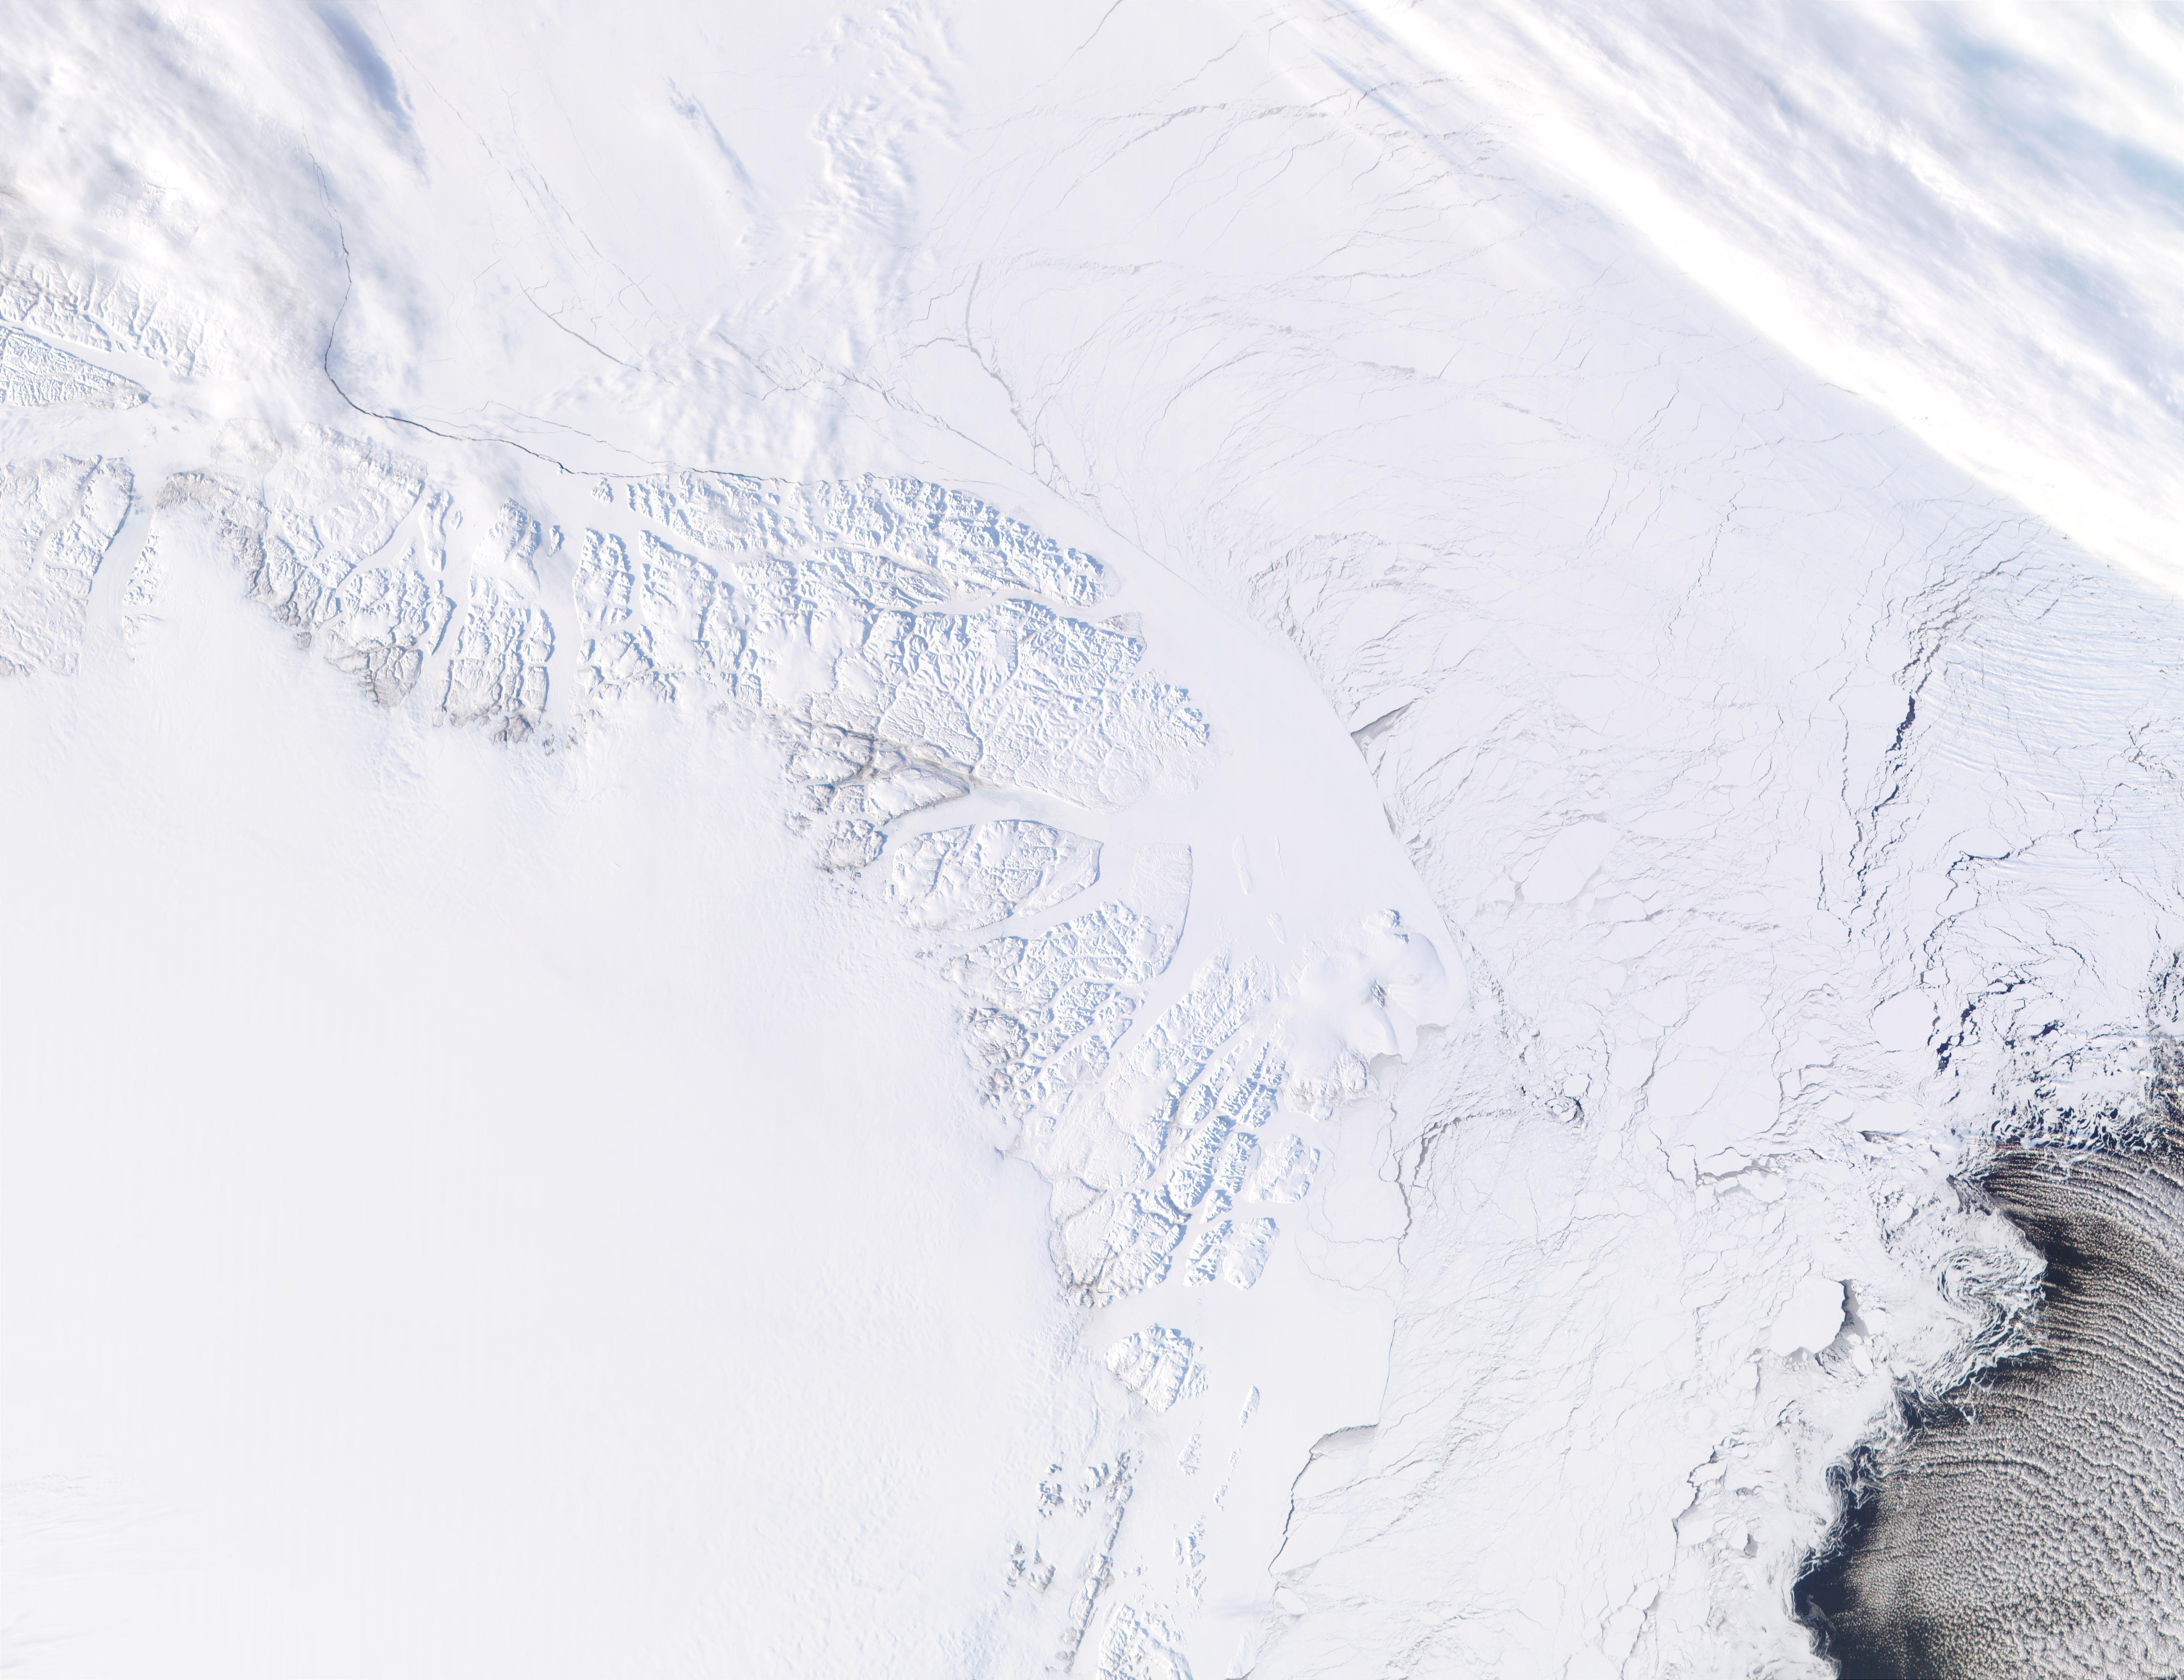 Peary Land, Northernmost Greenland